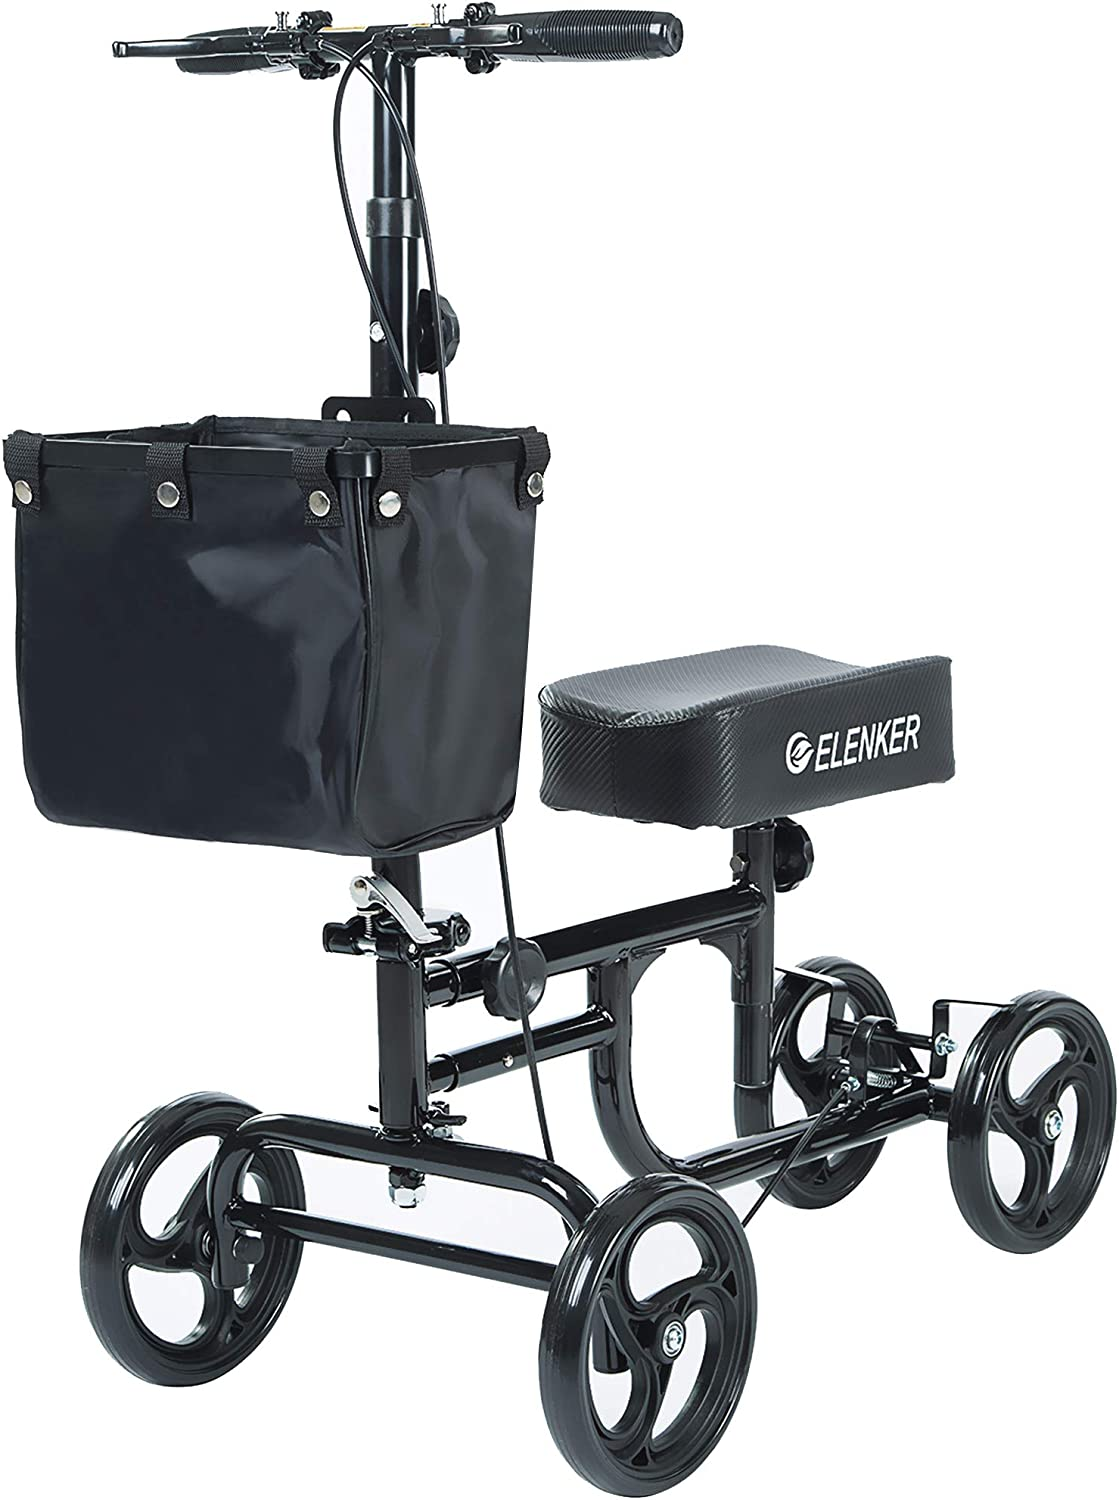 Elenker Steerable Deluxe Knee Scooter